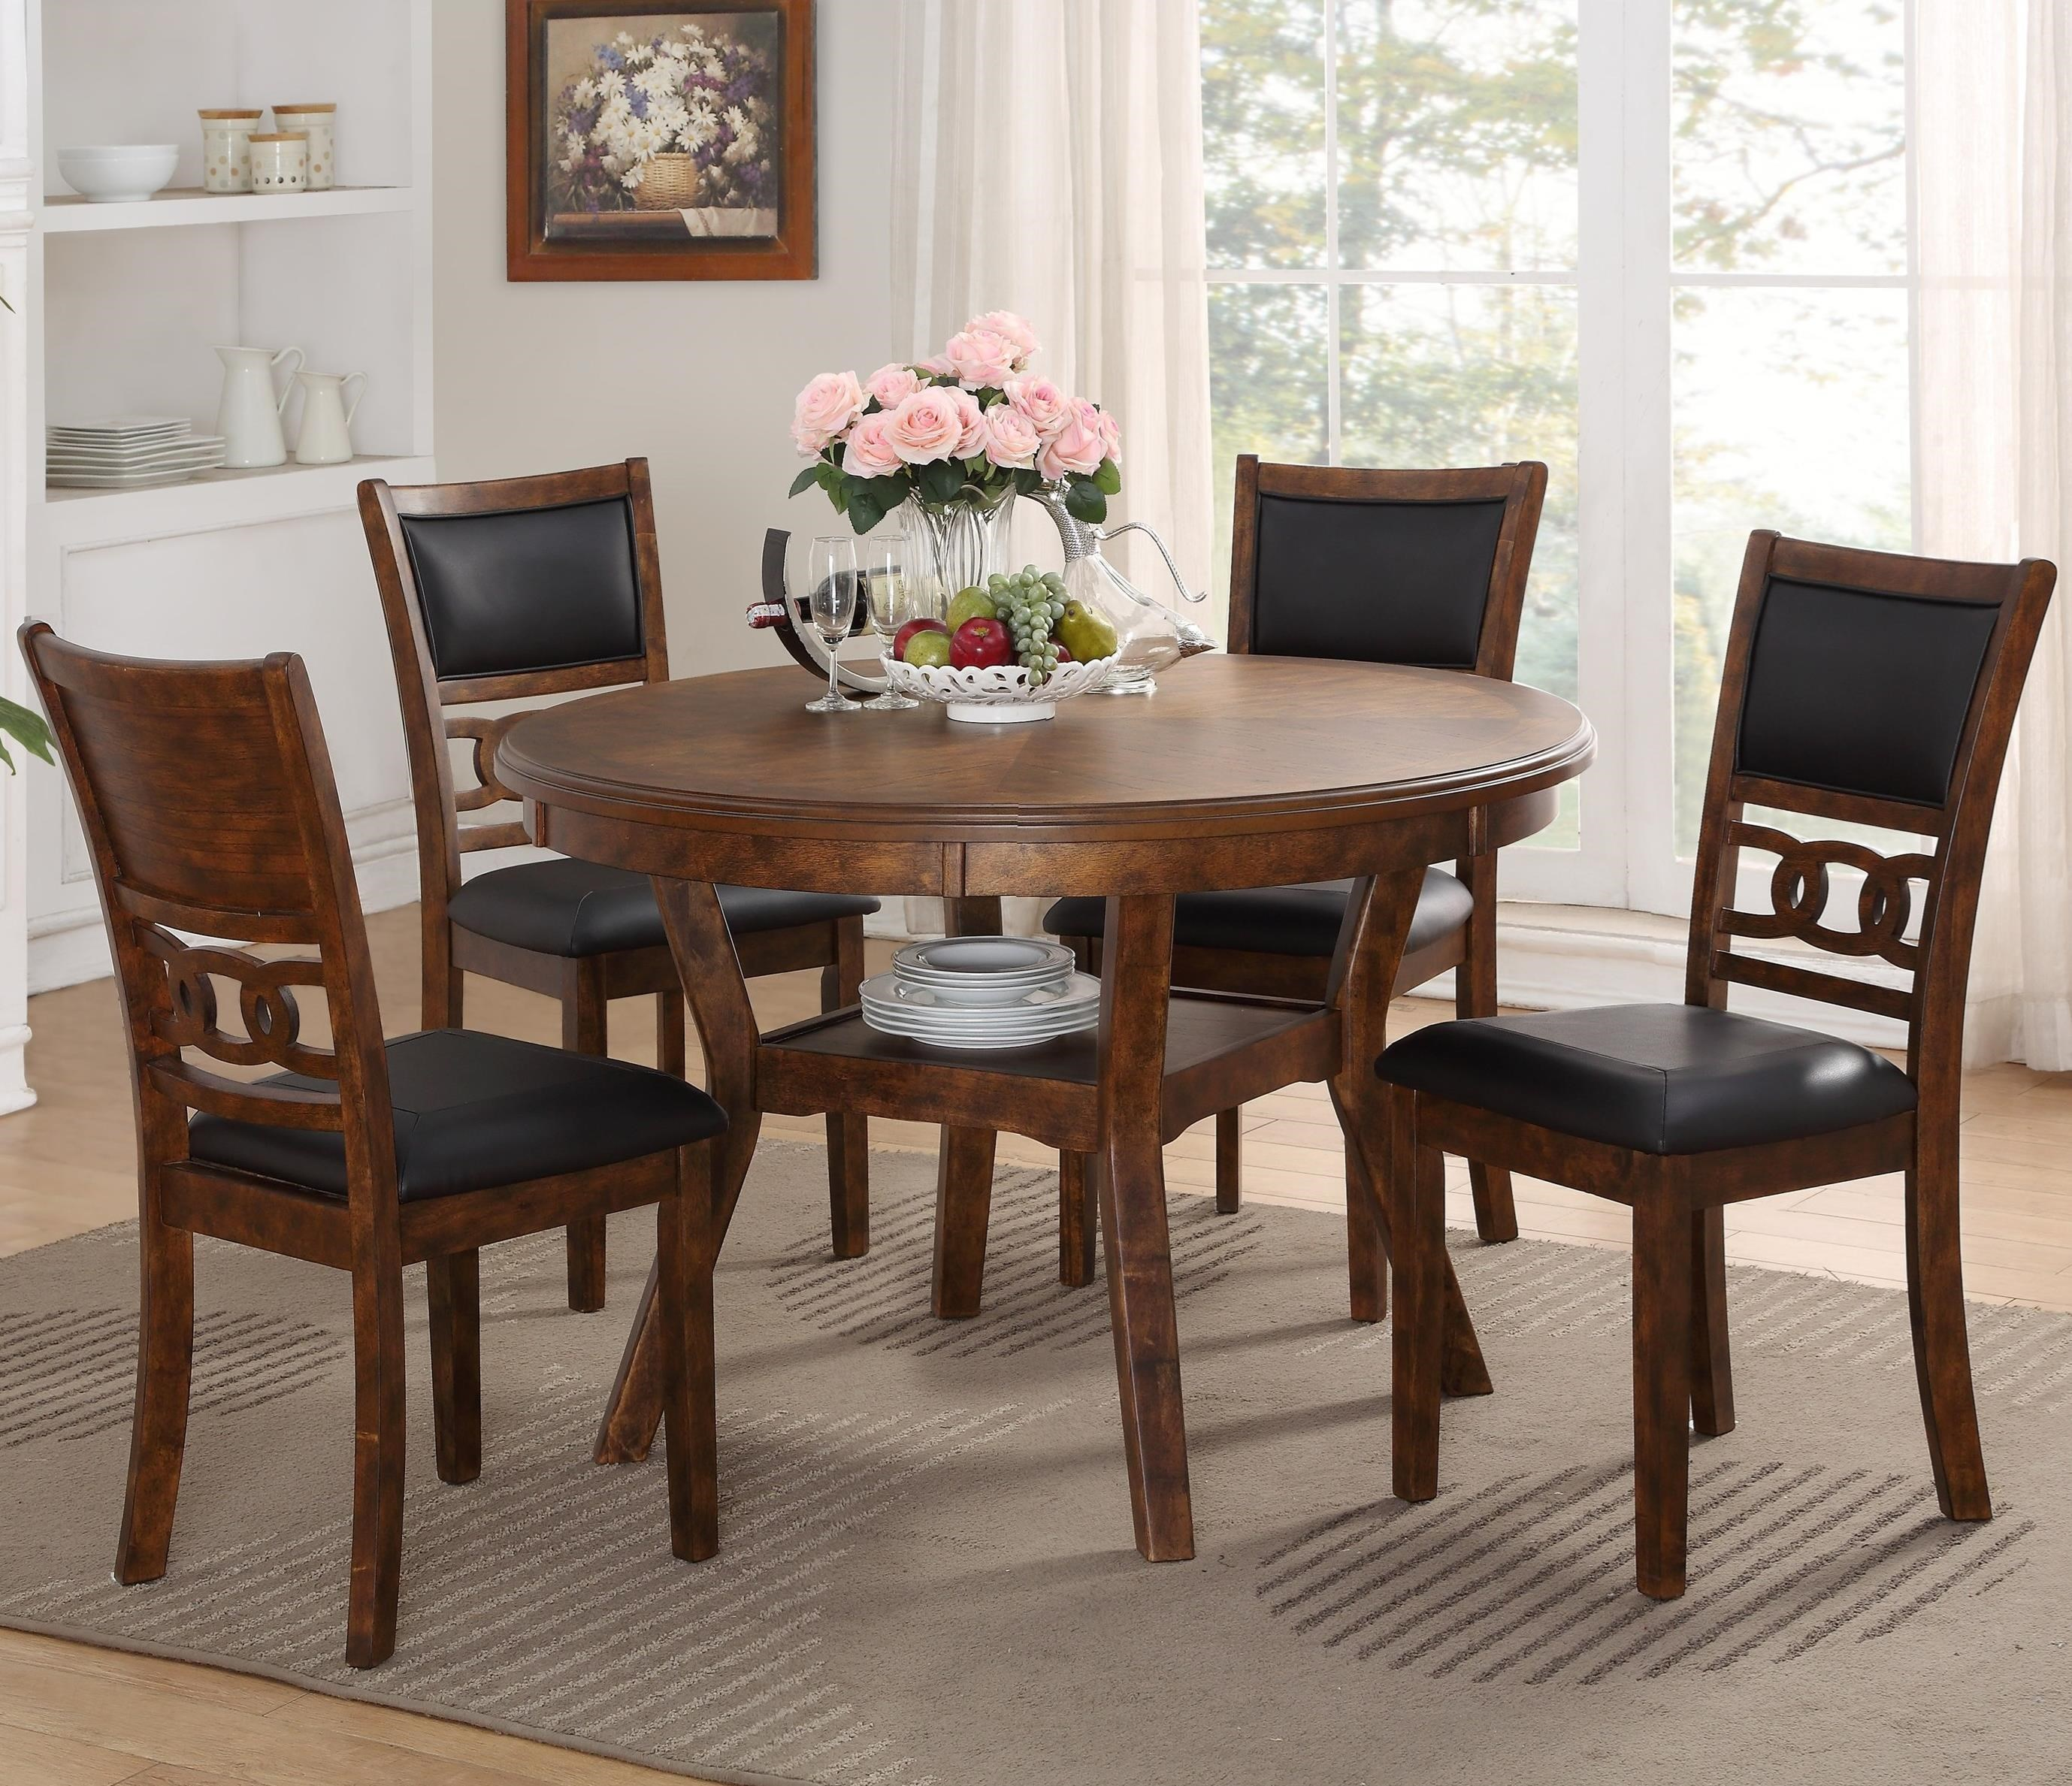 New Classic Gia D1701 50s Brn Dining Table And Chair Set